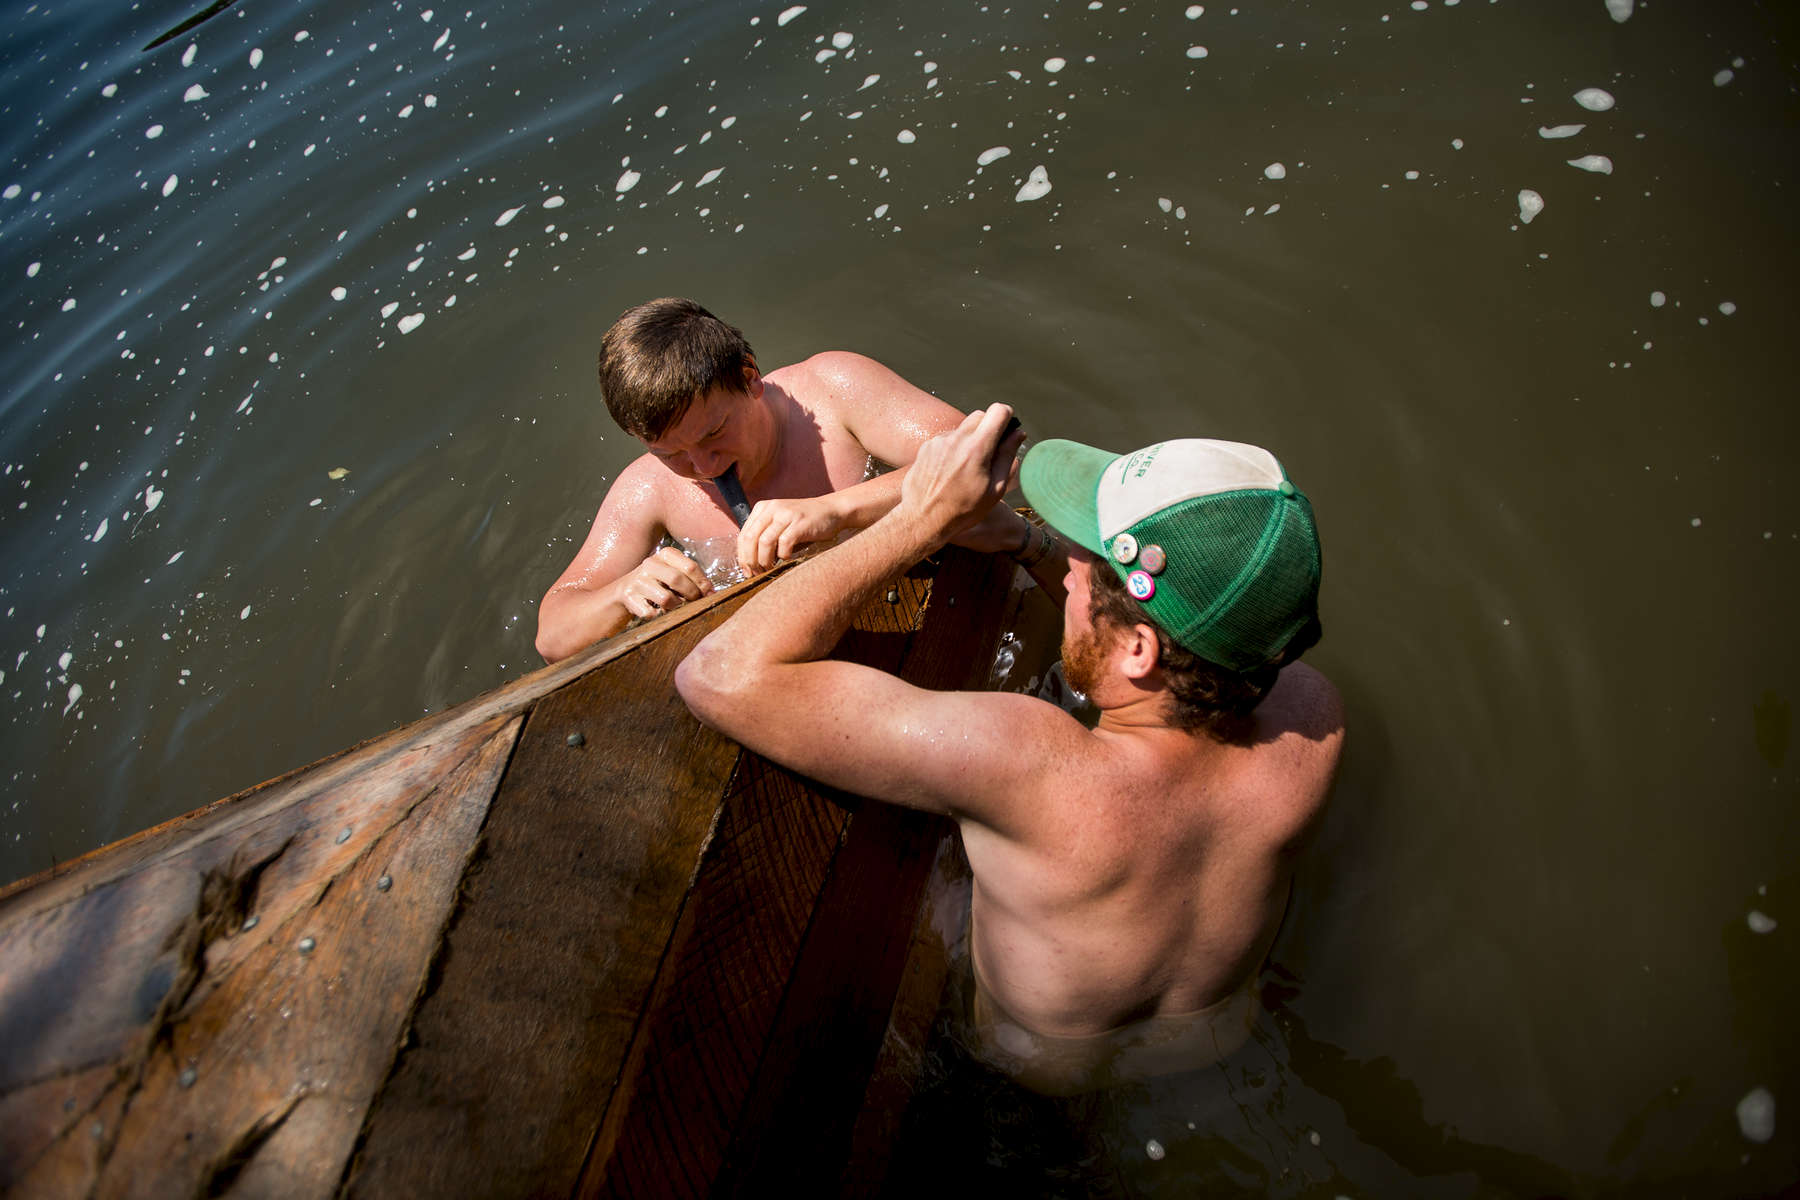 Nathan Shabestar and Dan Tucker fill small holes in the batteau's hull with oakum, a product made of hemp and petroleum that acts as a caulking and water sealant for the boat.